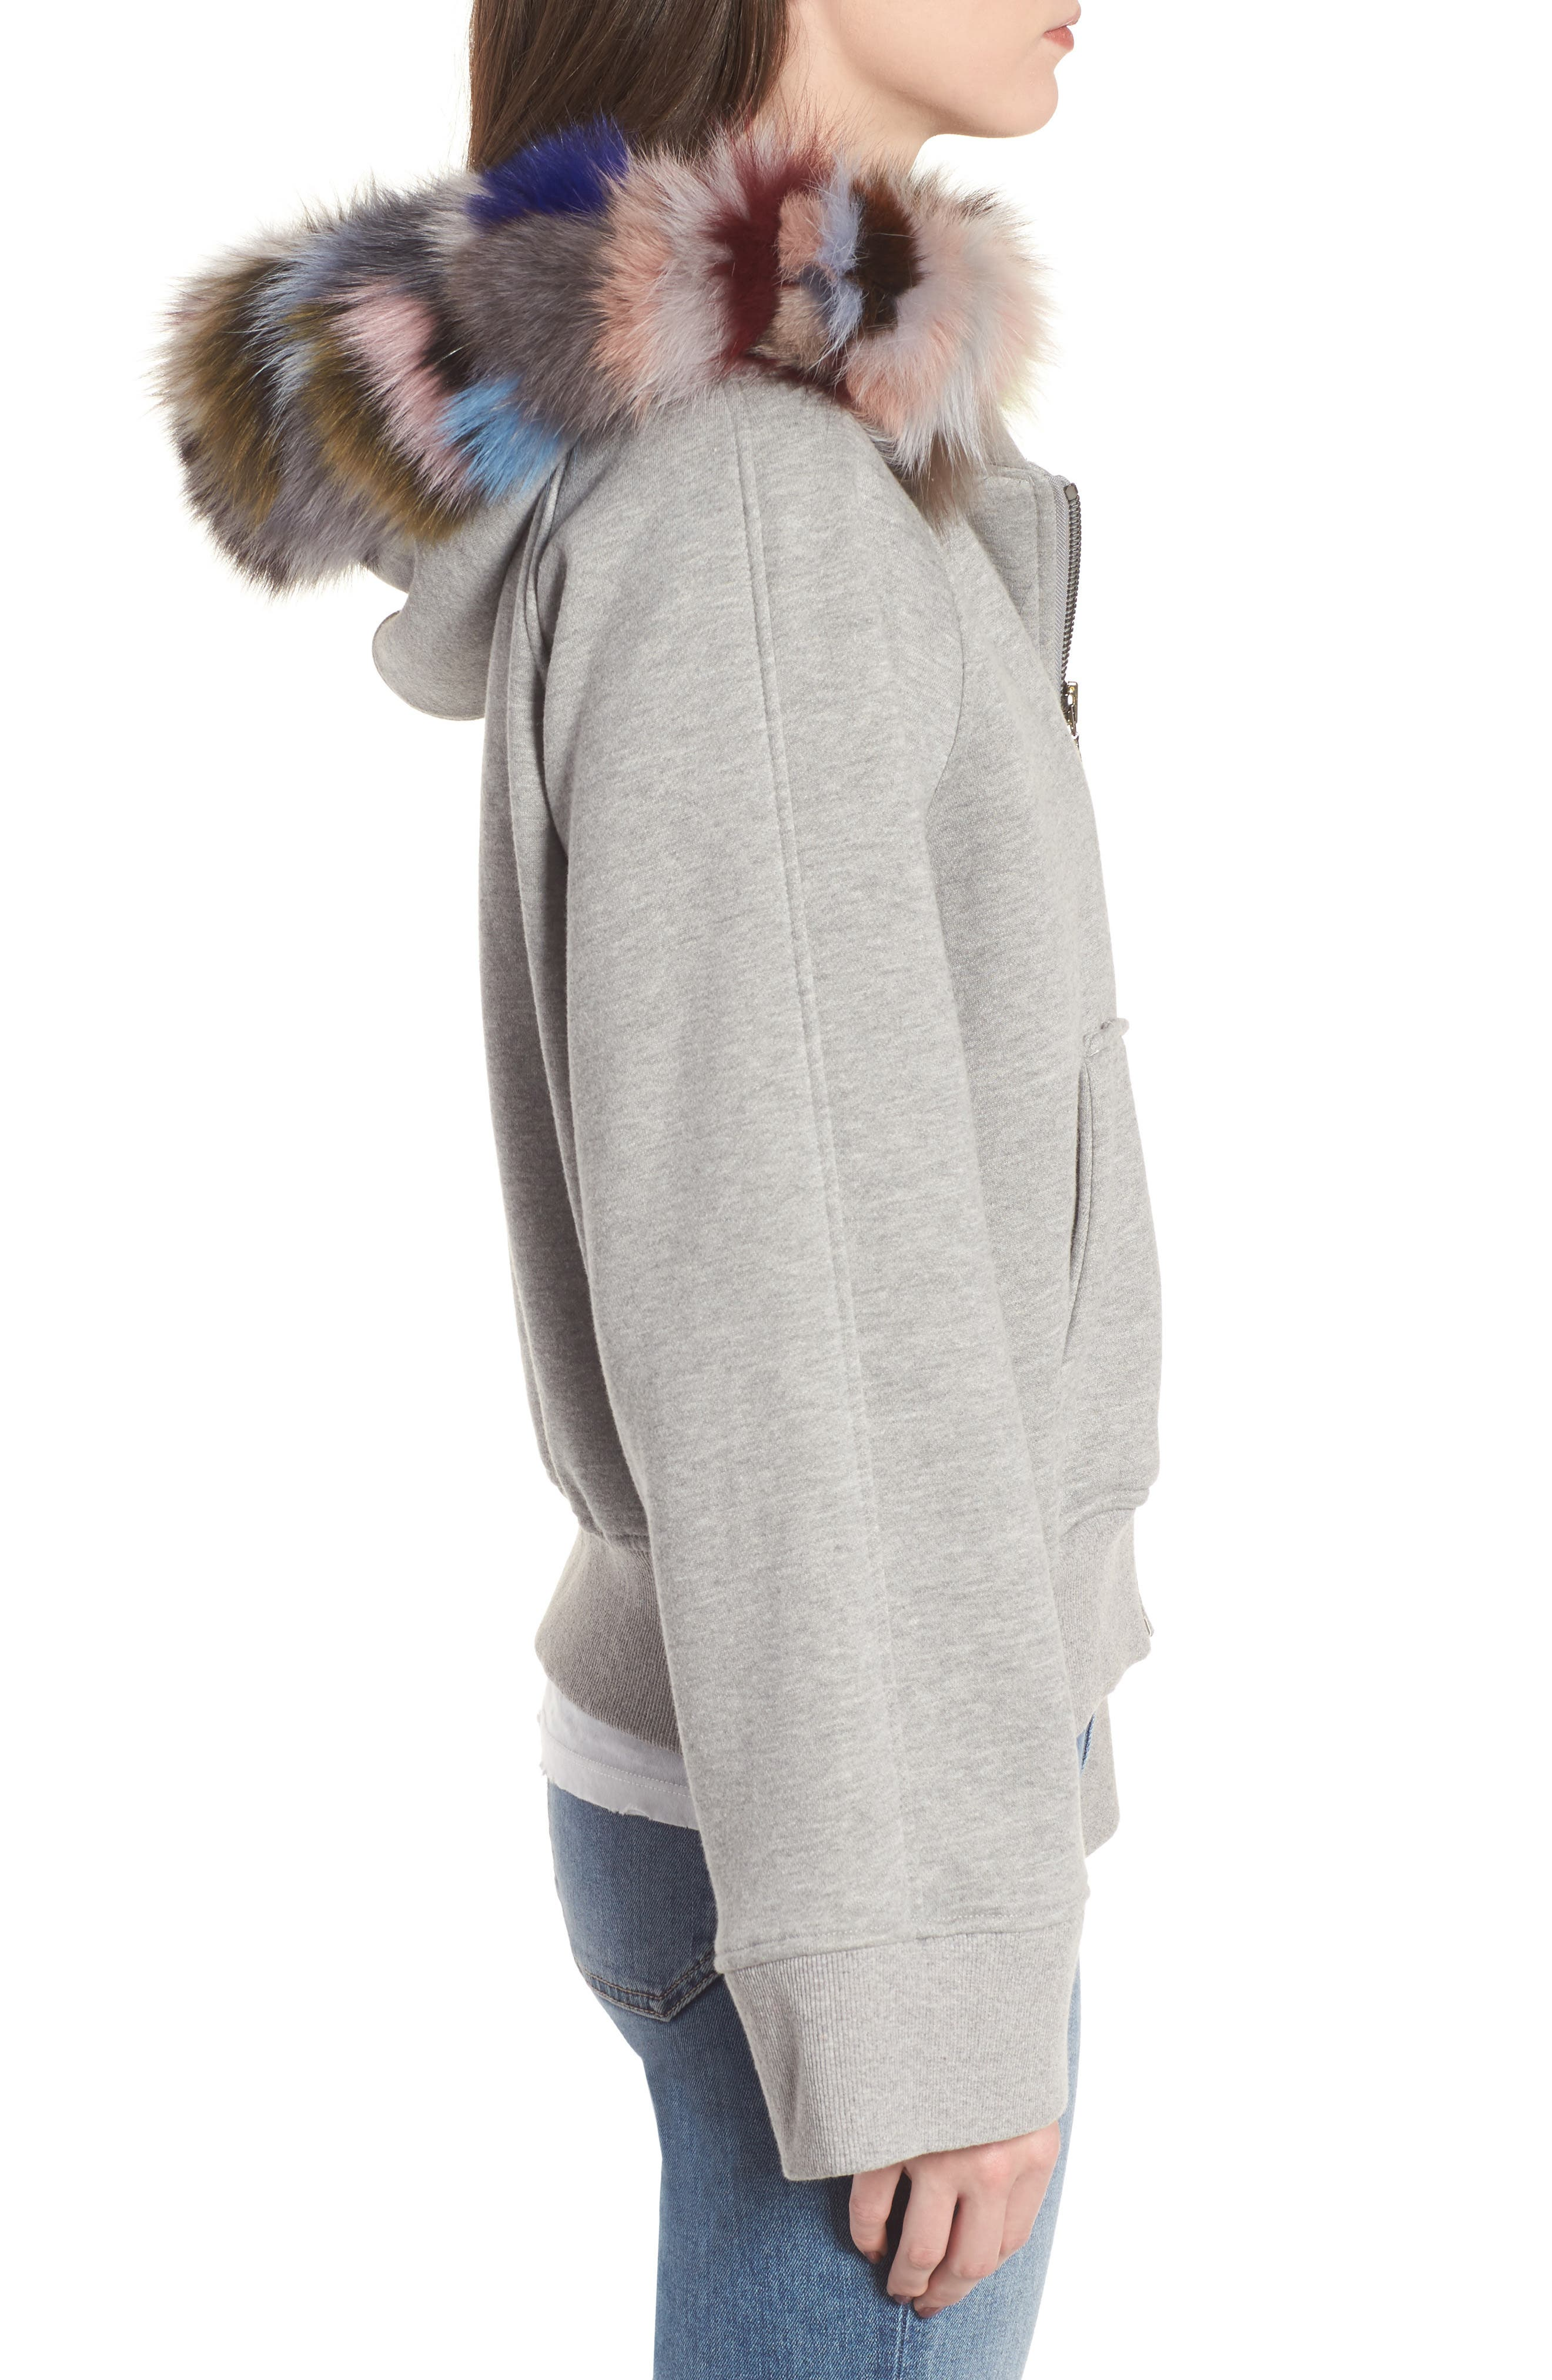 BAGATELLE.CITY The Luxe Hooded Jacket with Genuine Fox Fur Trim,                             Alternate thumbnail 7, color,